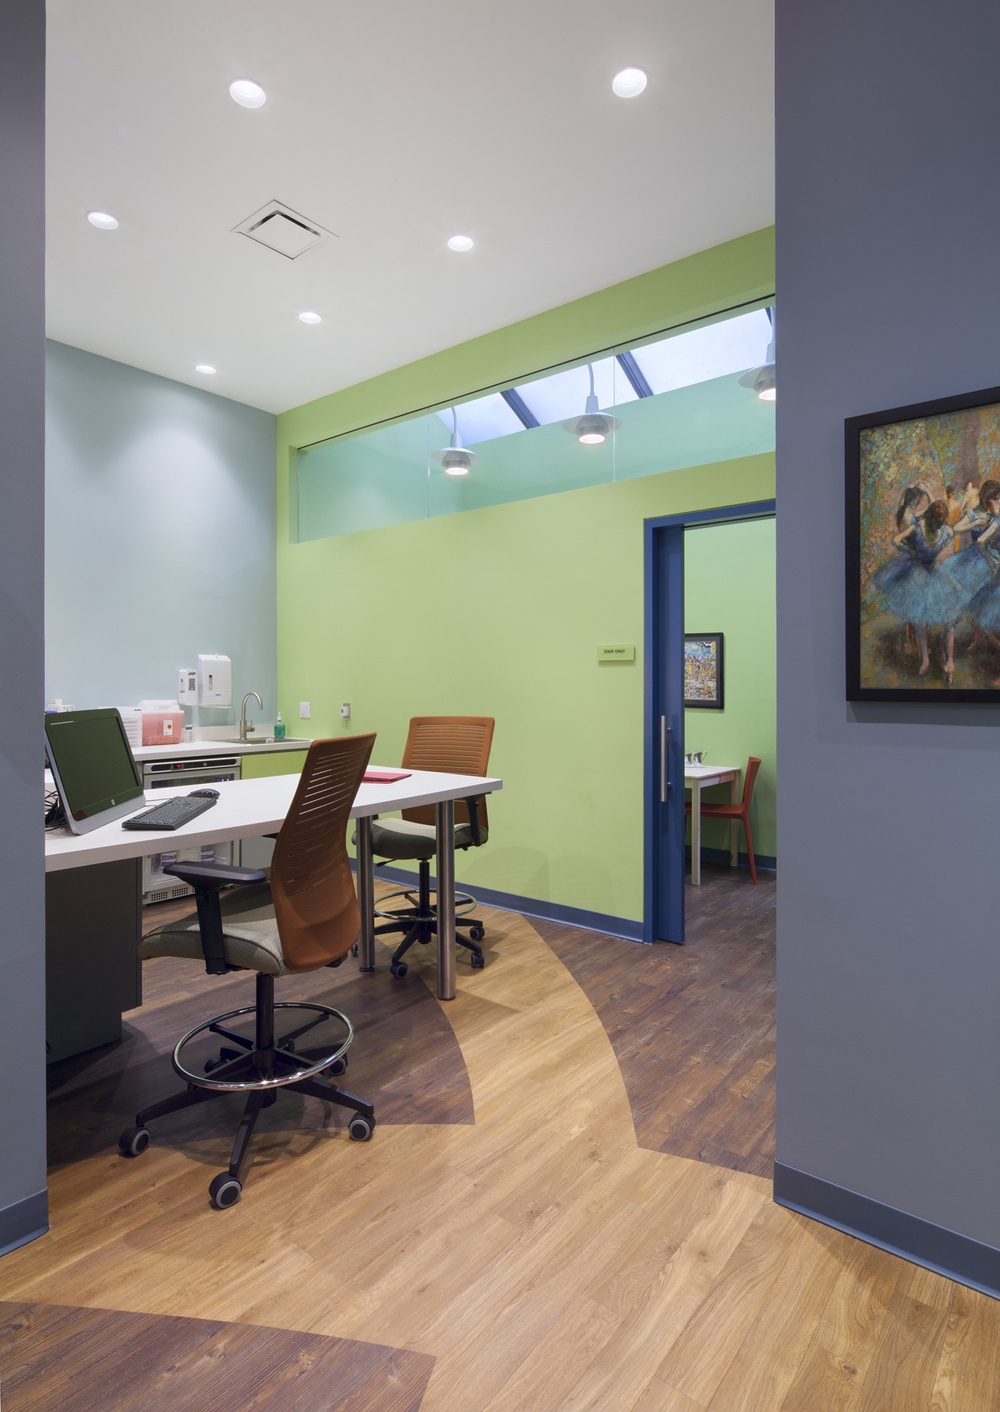 Flatiron Pediatrics. Tobin Parnes Design. NYC. Healthcare Design. Workplace